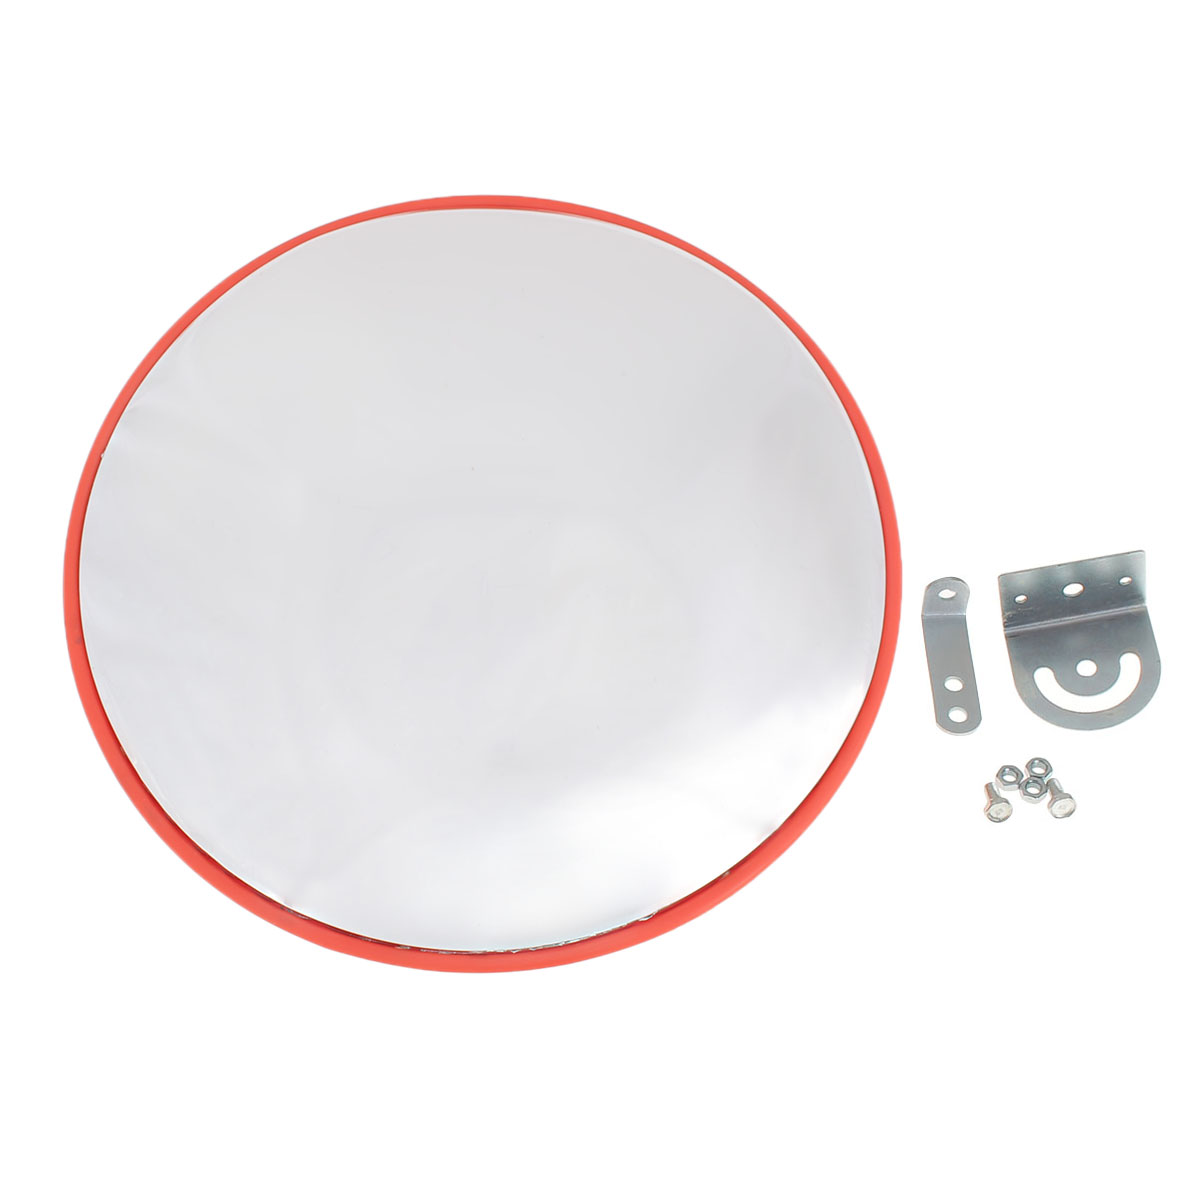 Safurance 45cm Wide Angle Security Curved Convex Road PC Mirror Traffic Driveway SafetySafurance 45cm Wide Angle Security Curved Convex Road PC Mirror Traffic Driveway Safety